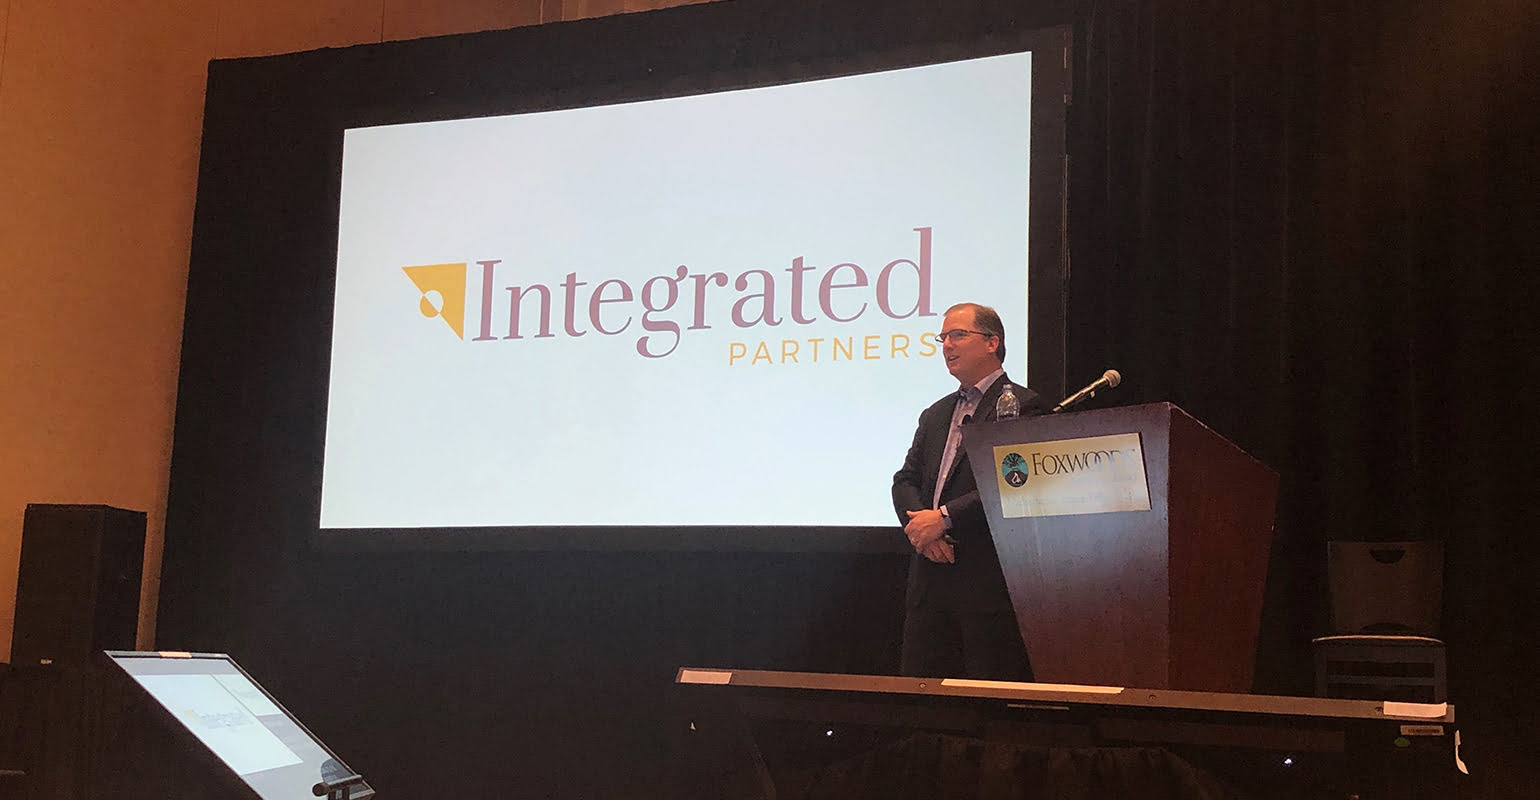 Integrated Partners Adds $430 Million Mohr Financial Group